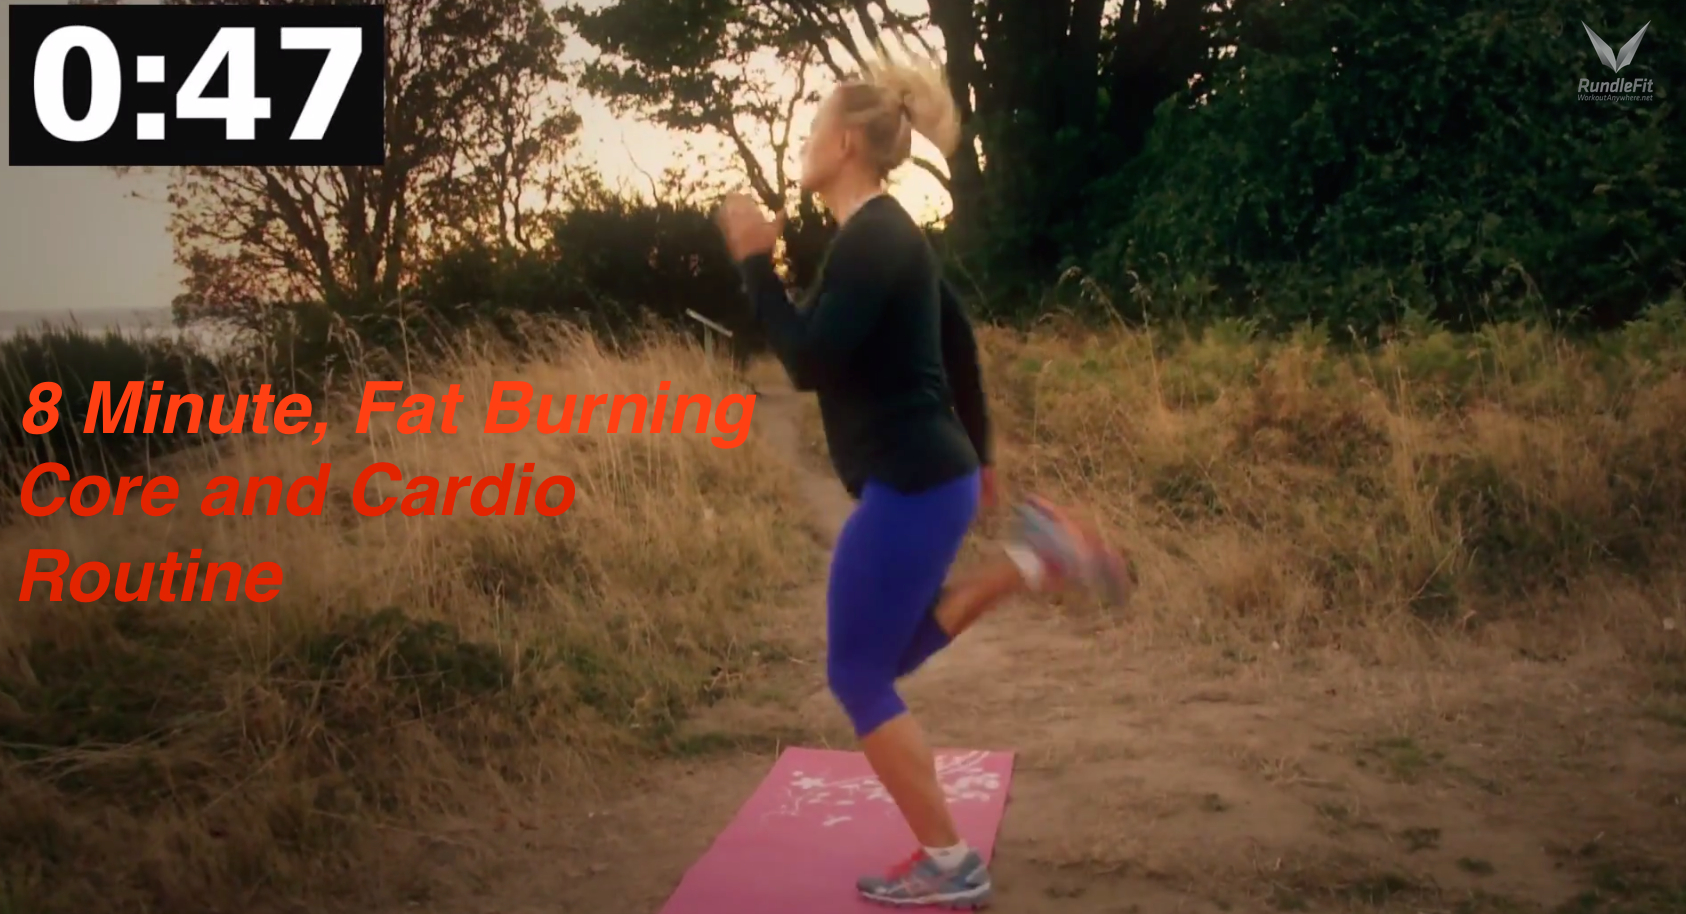 8 Minute Fat Burning Core and Cardio